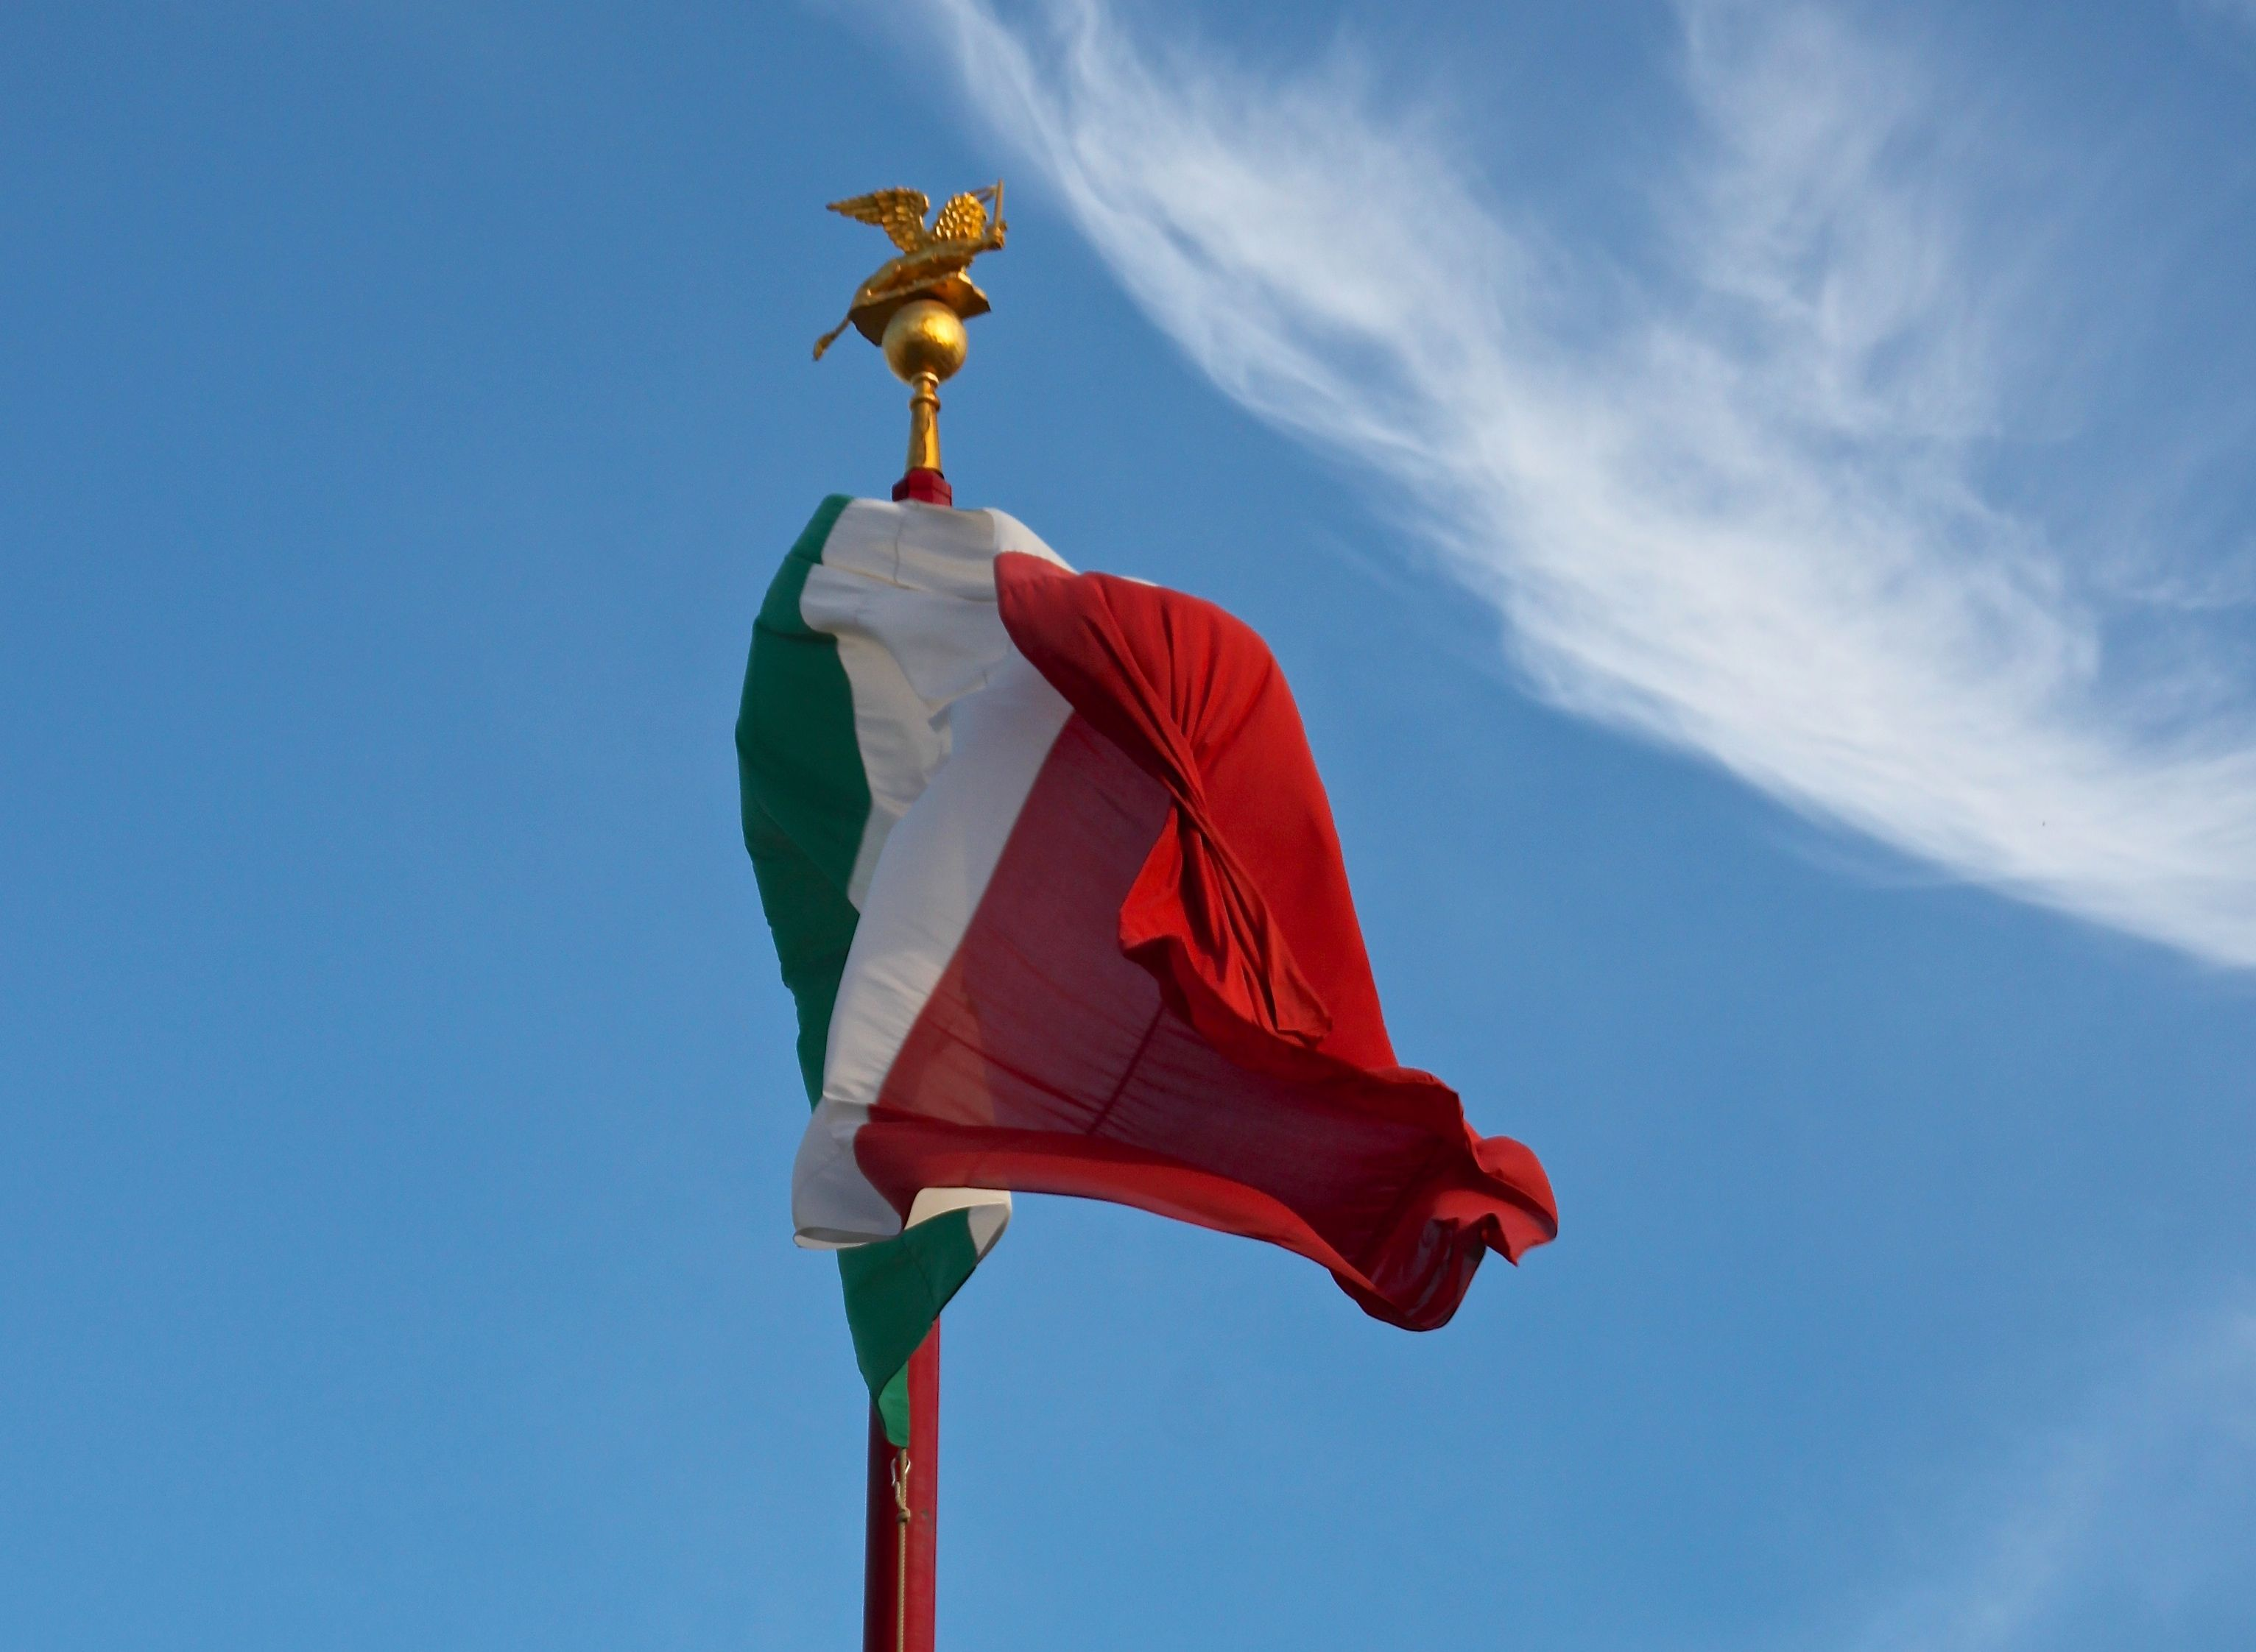 The Italian Tricolore flag will be flying with pride on January 7th